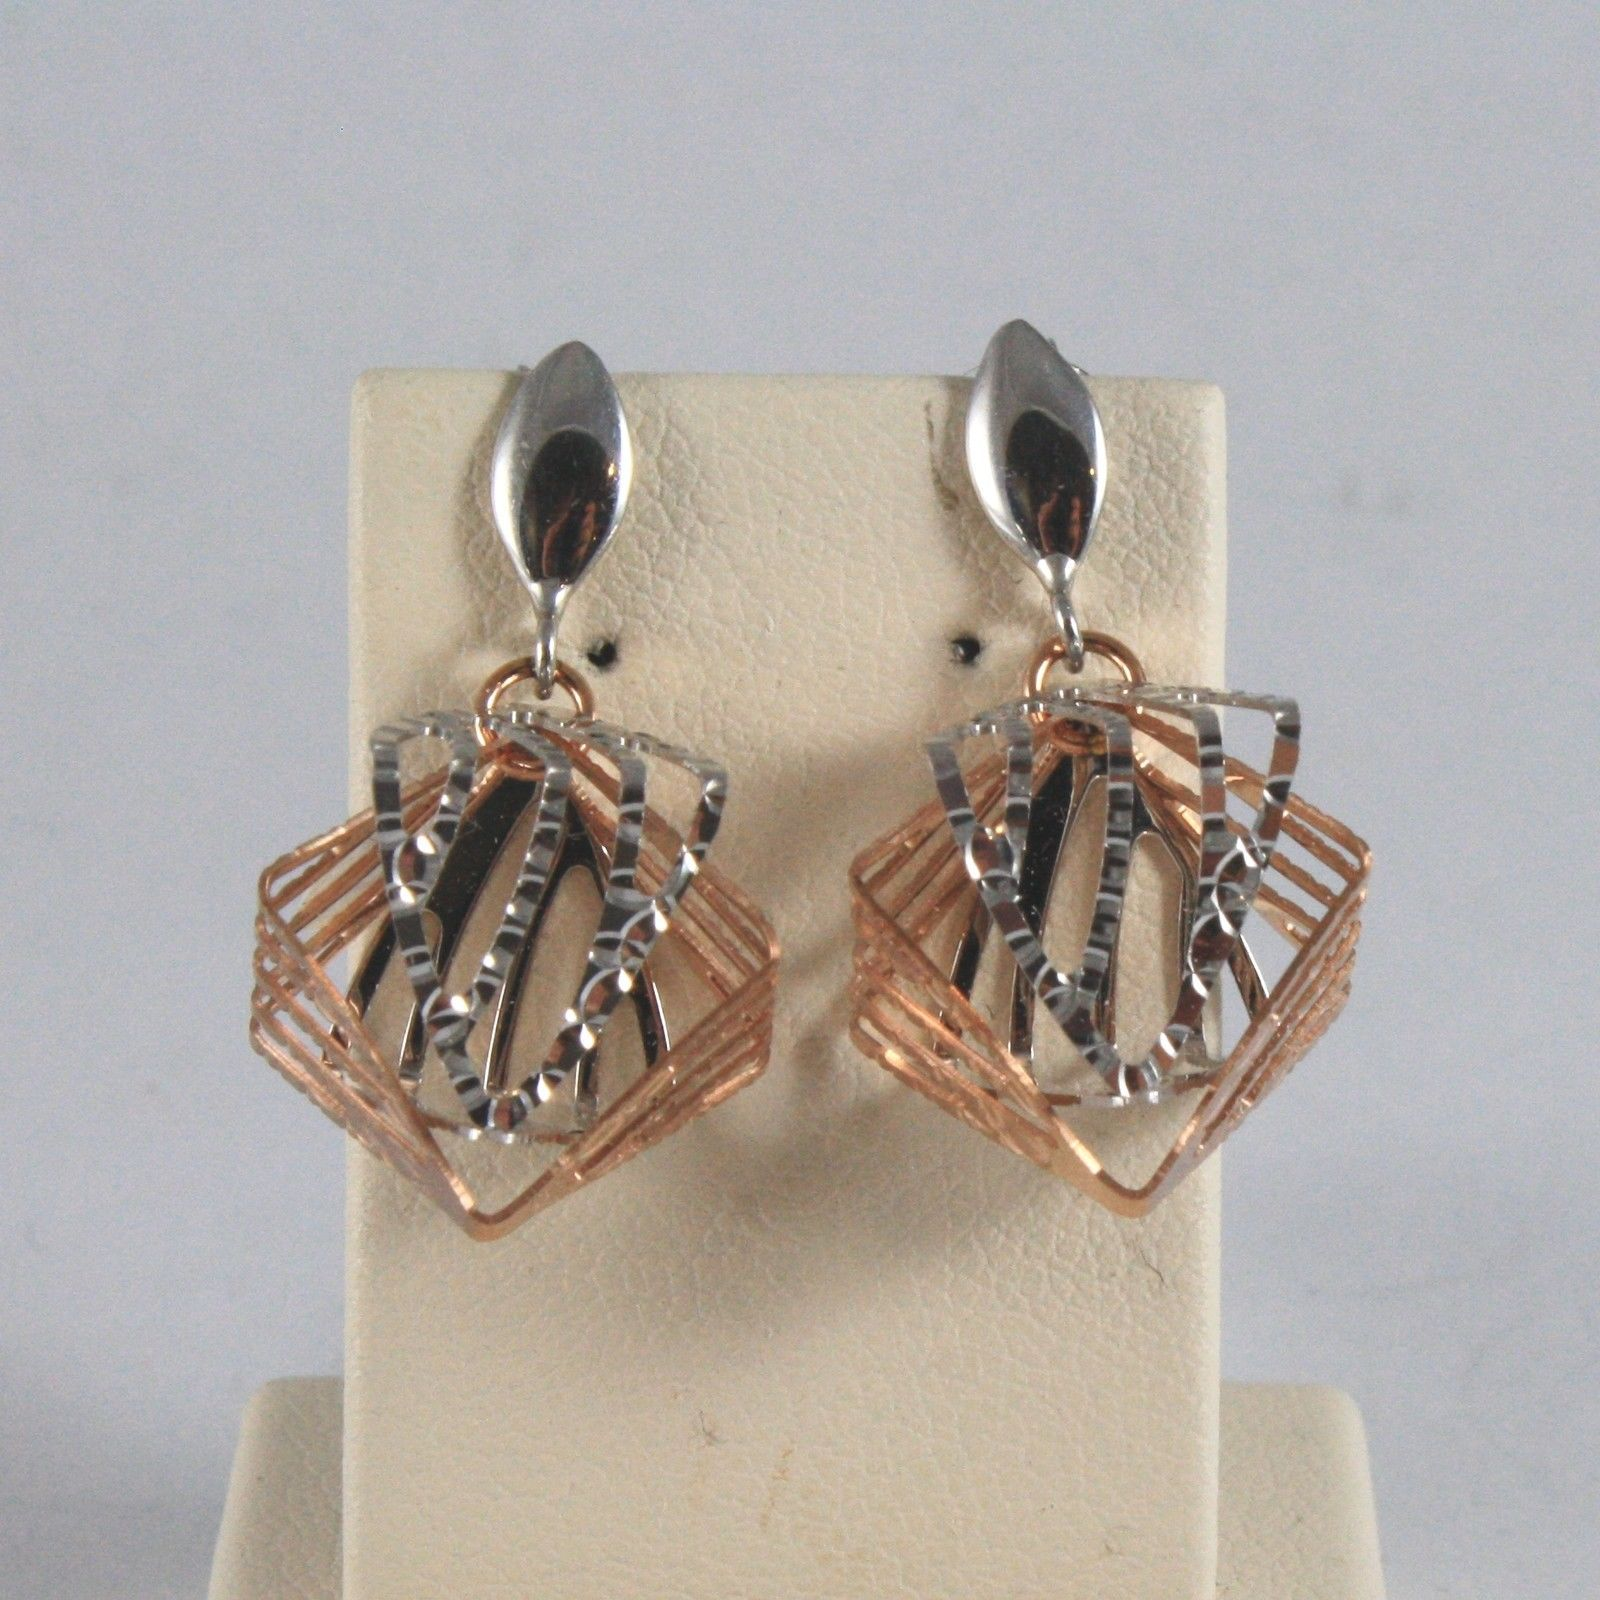 18K SOLID WHITE AND ROSE GOLD EARRINGS WITH WORKED RHOMBUS MADE IN ITALY 18K